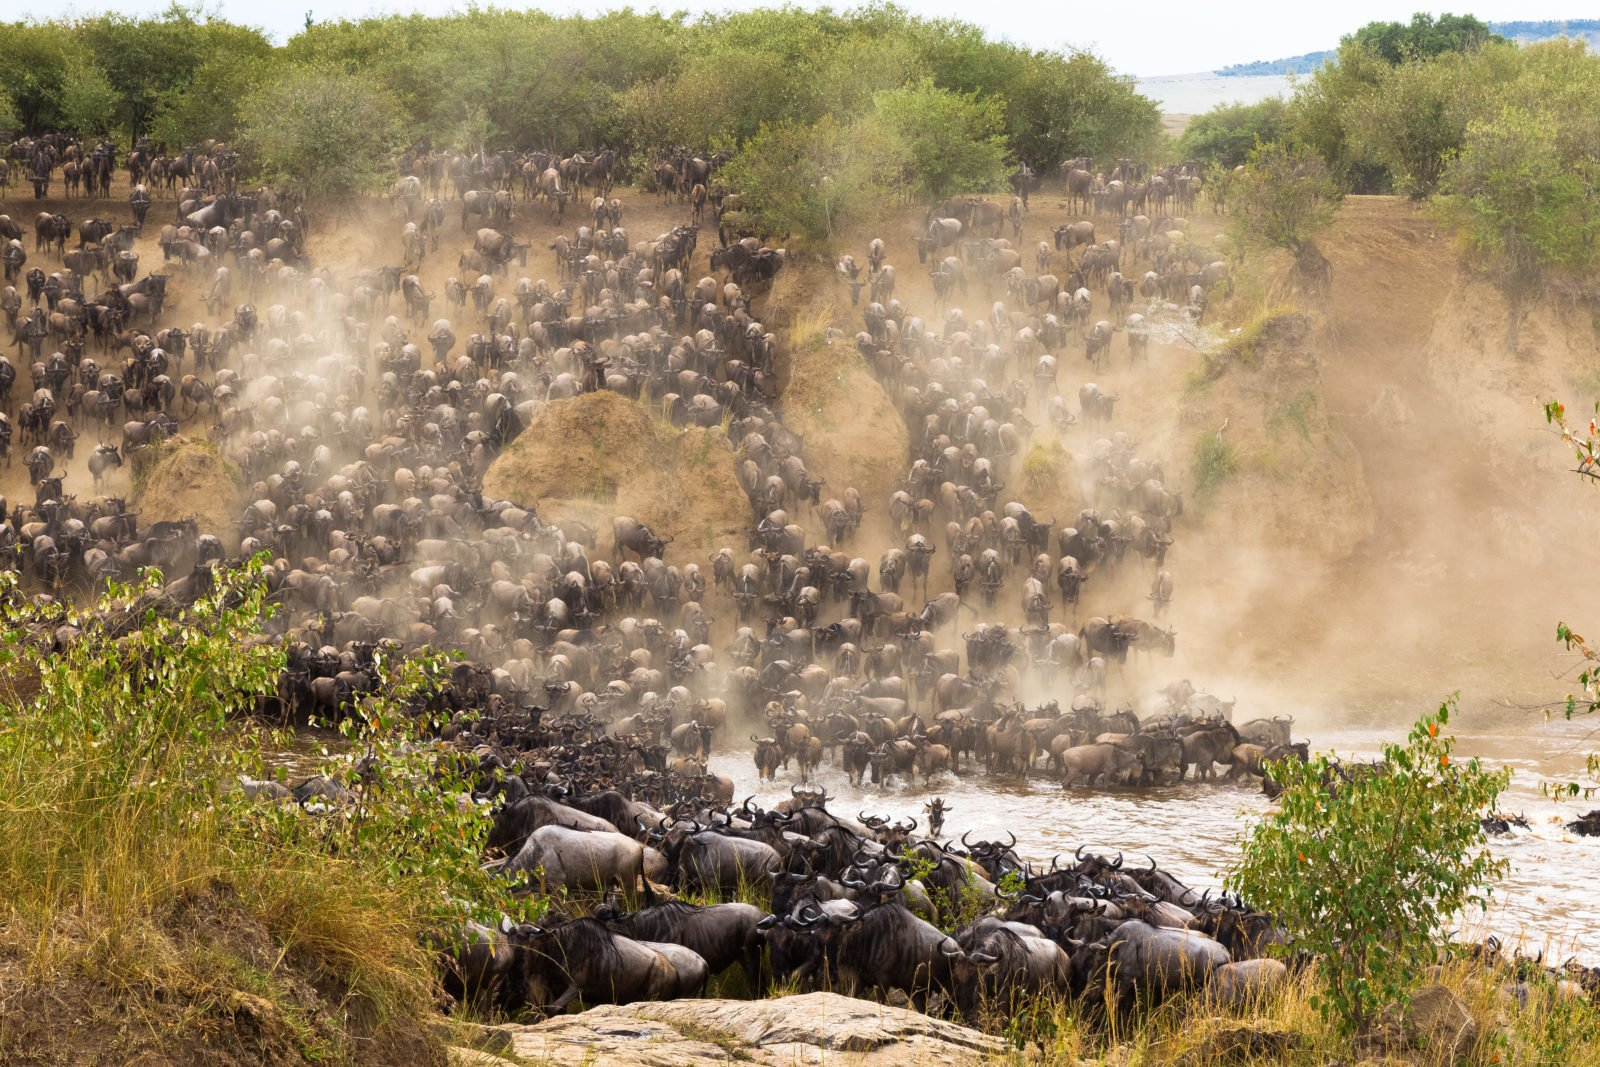 The Wildebeest migration, Kenya | The Lion King